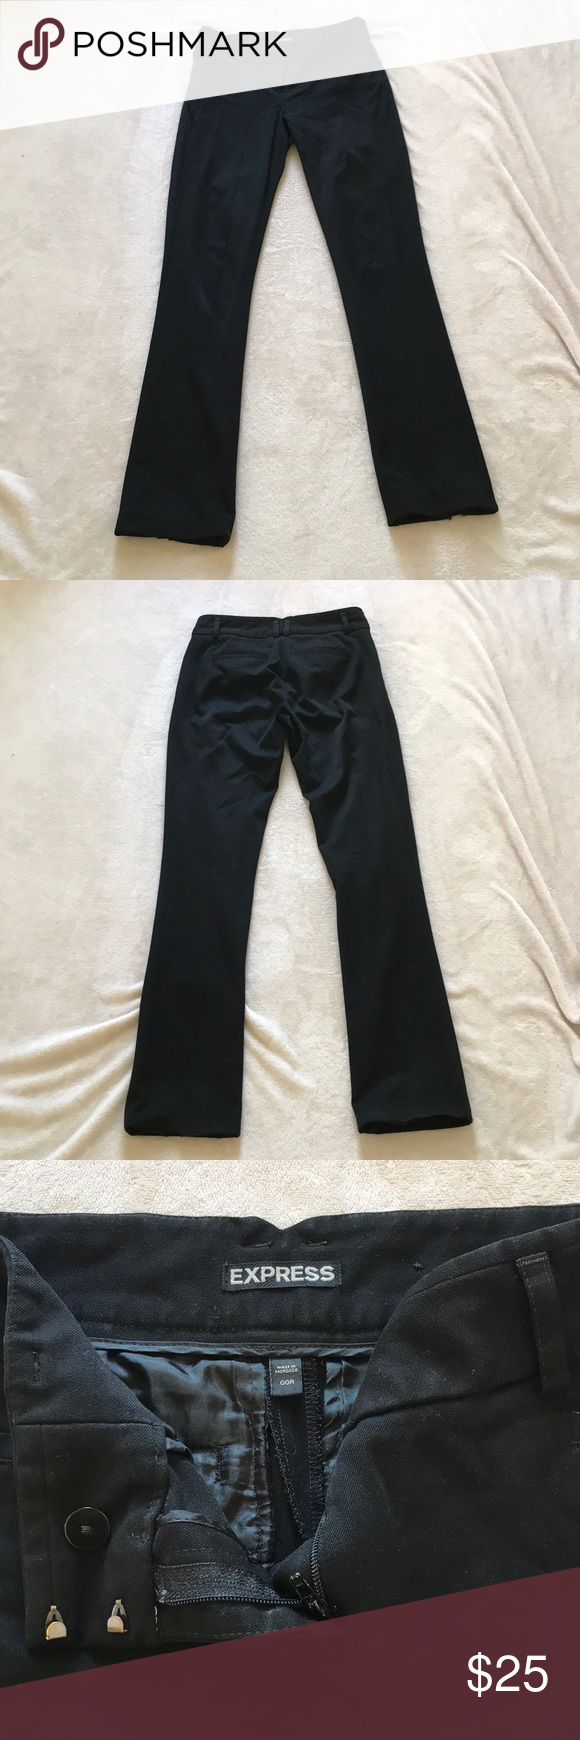 """EXPRESS Columnist Fit Pants These are a well loved pair of Express Columnist fit pants Fitted through the hip and thigh Size runs large fits like a 25"""" waist, inseam is 30"""" In great condition aside from damage to the bottom of the pants from stepping on them Fabric never looks faded great quality work pants Make me an offer! Express Pants Straight Leg"""